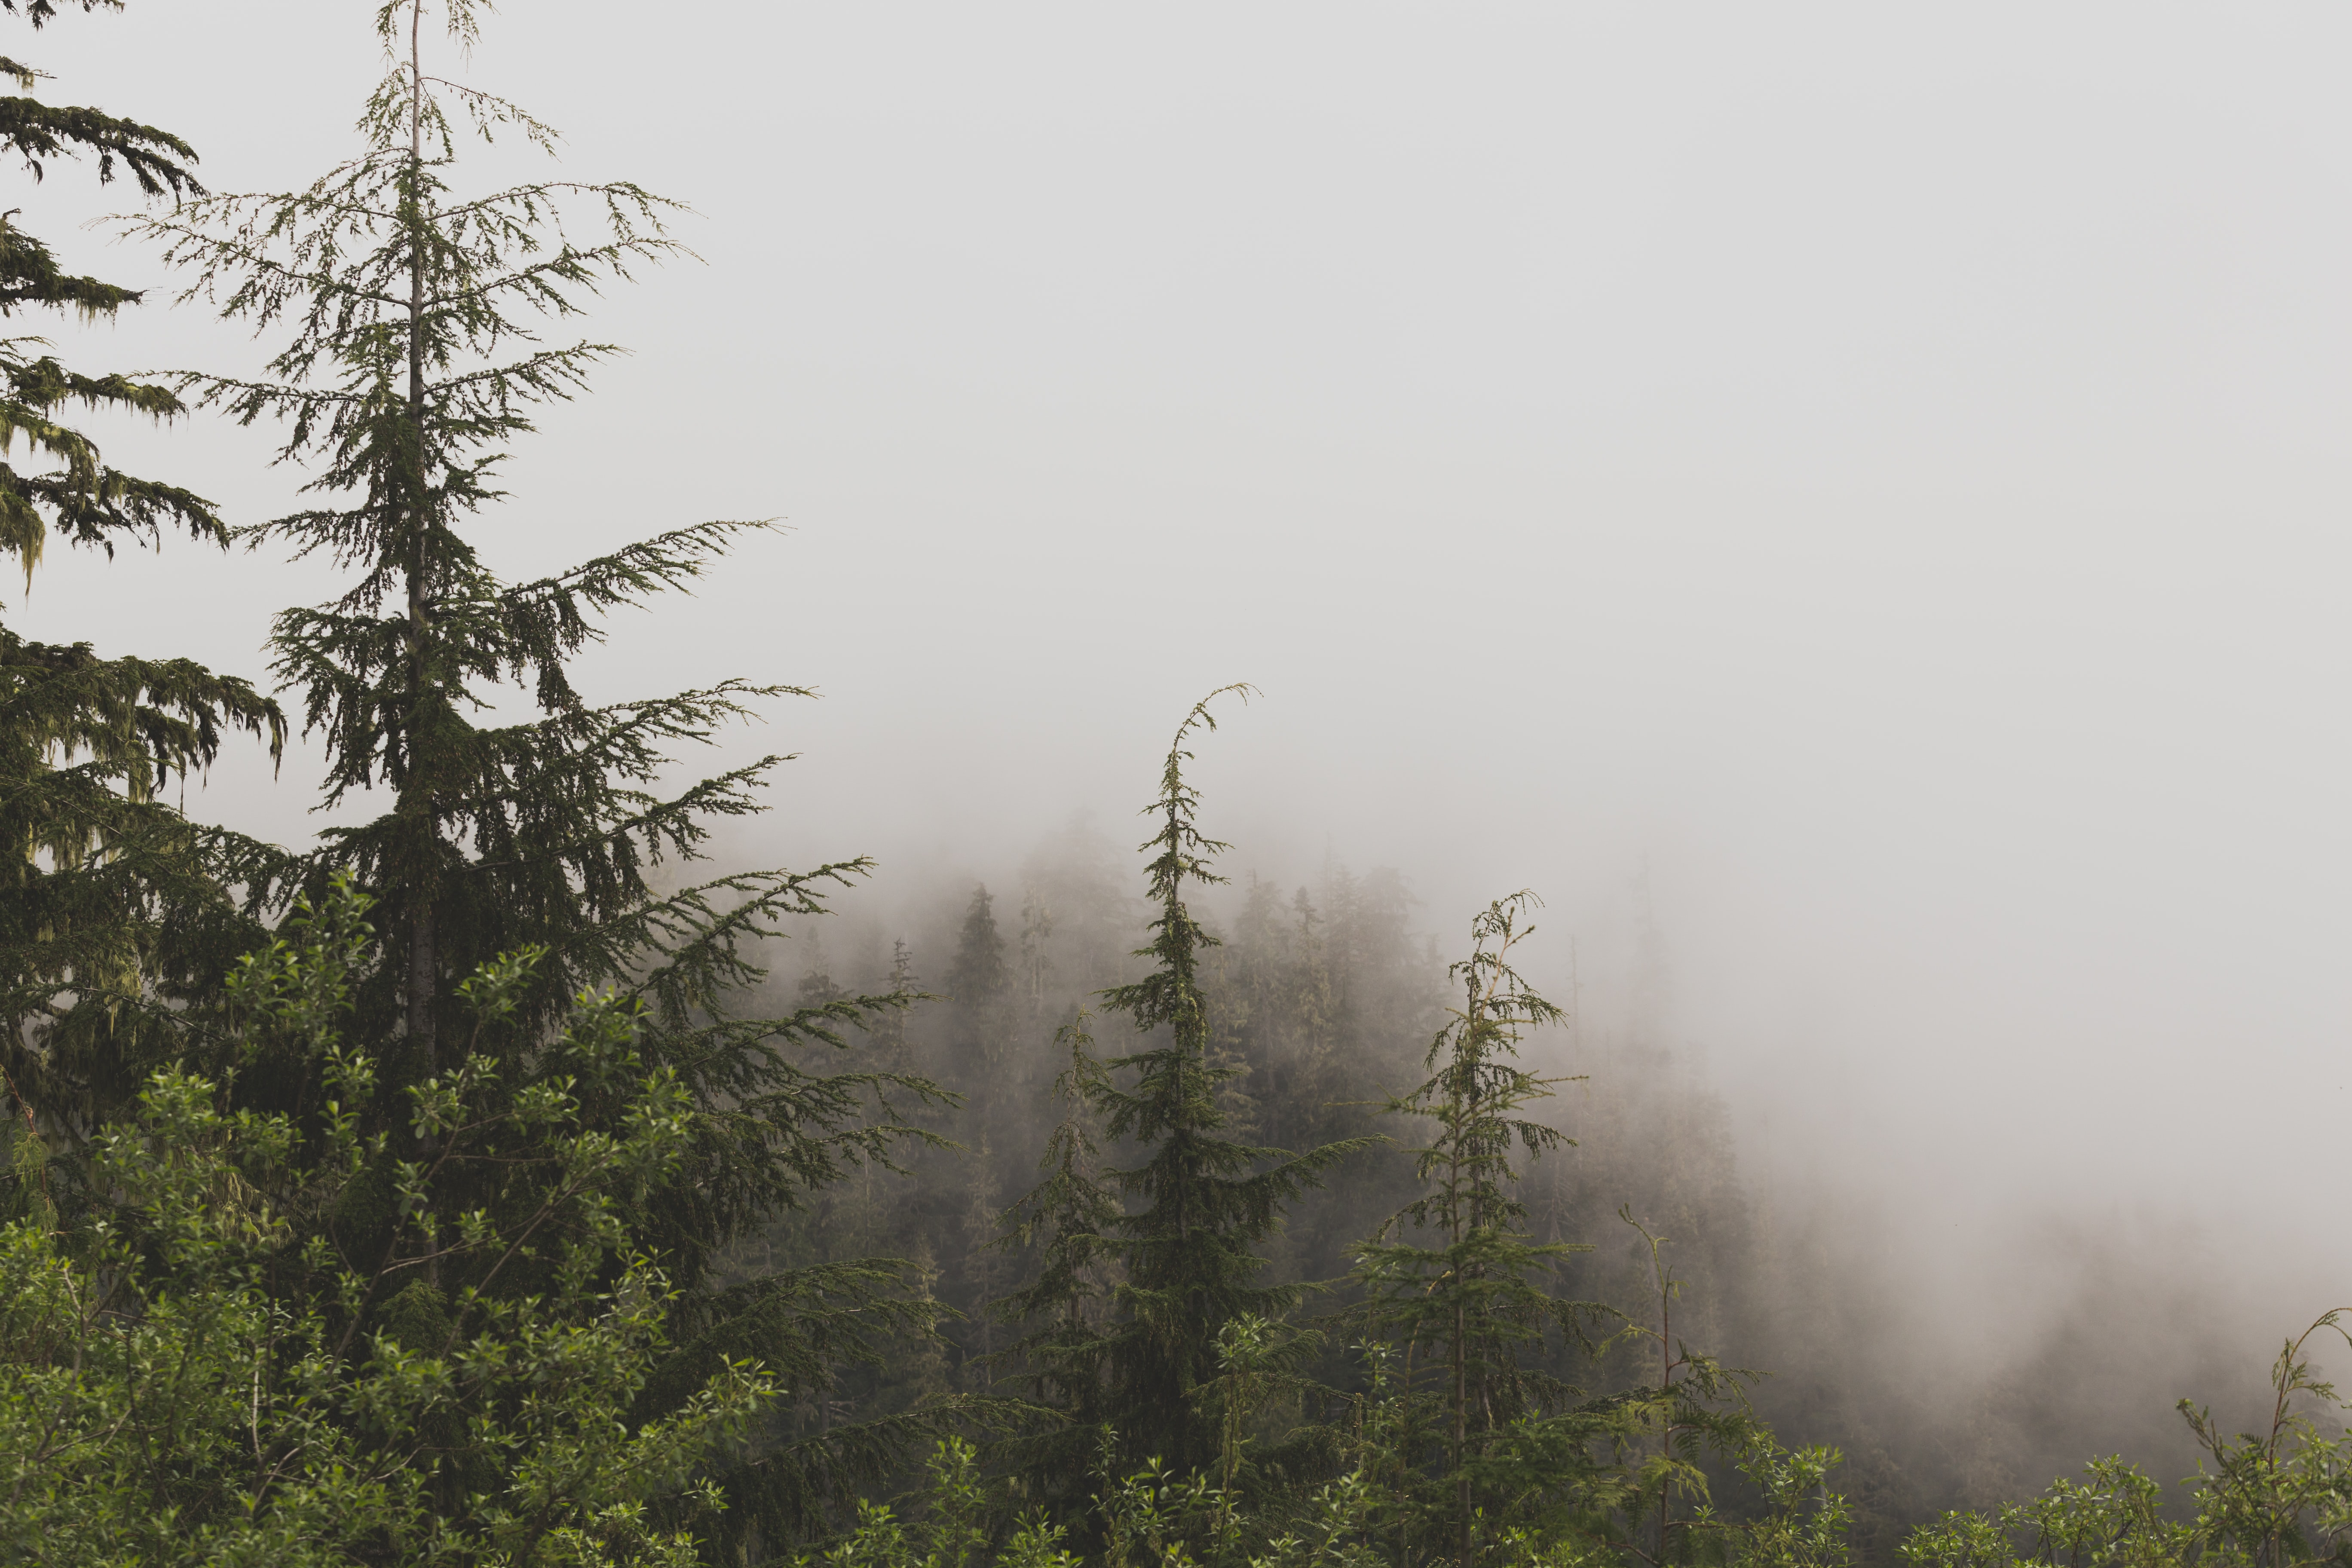 Heavy fog over a pine forest